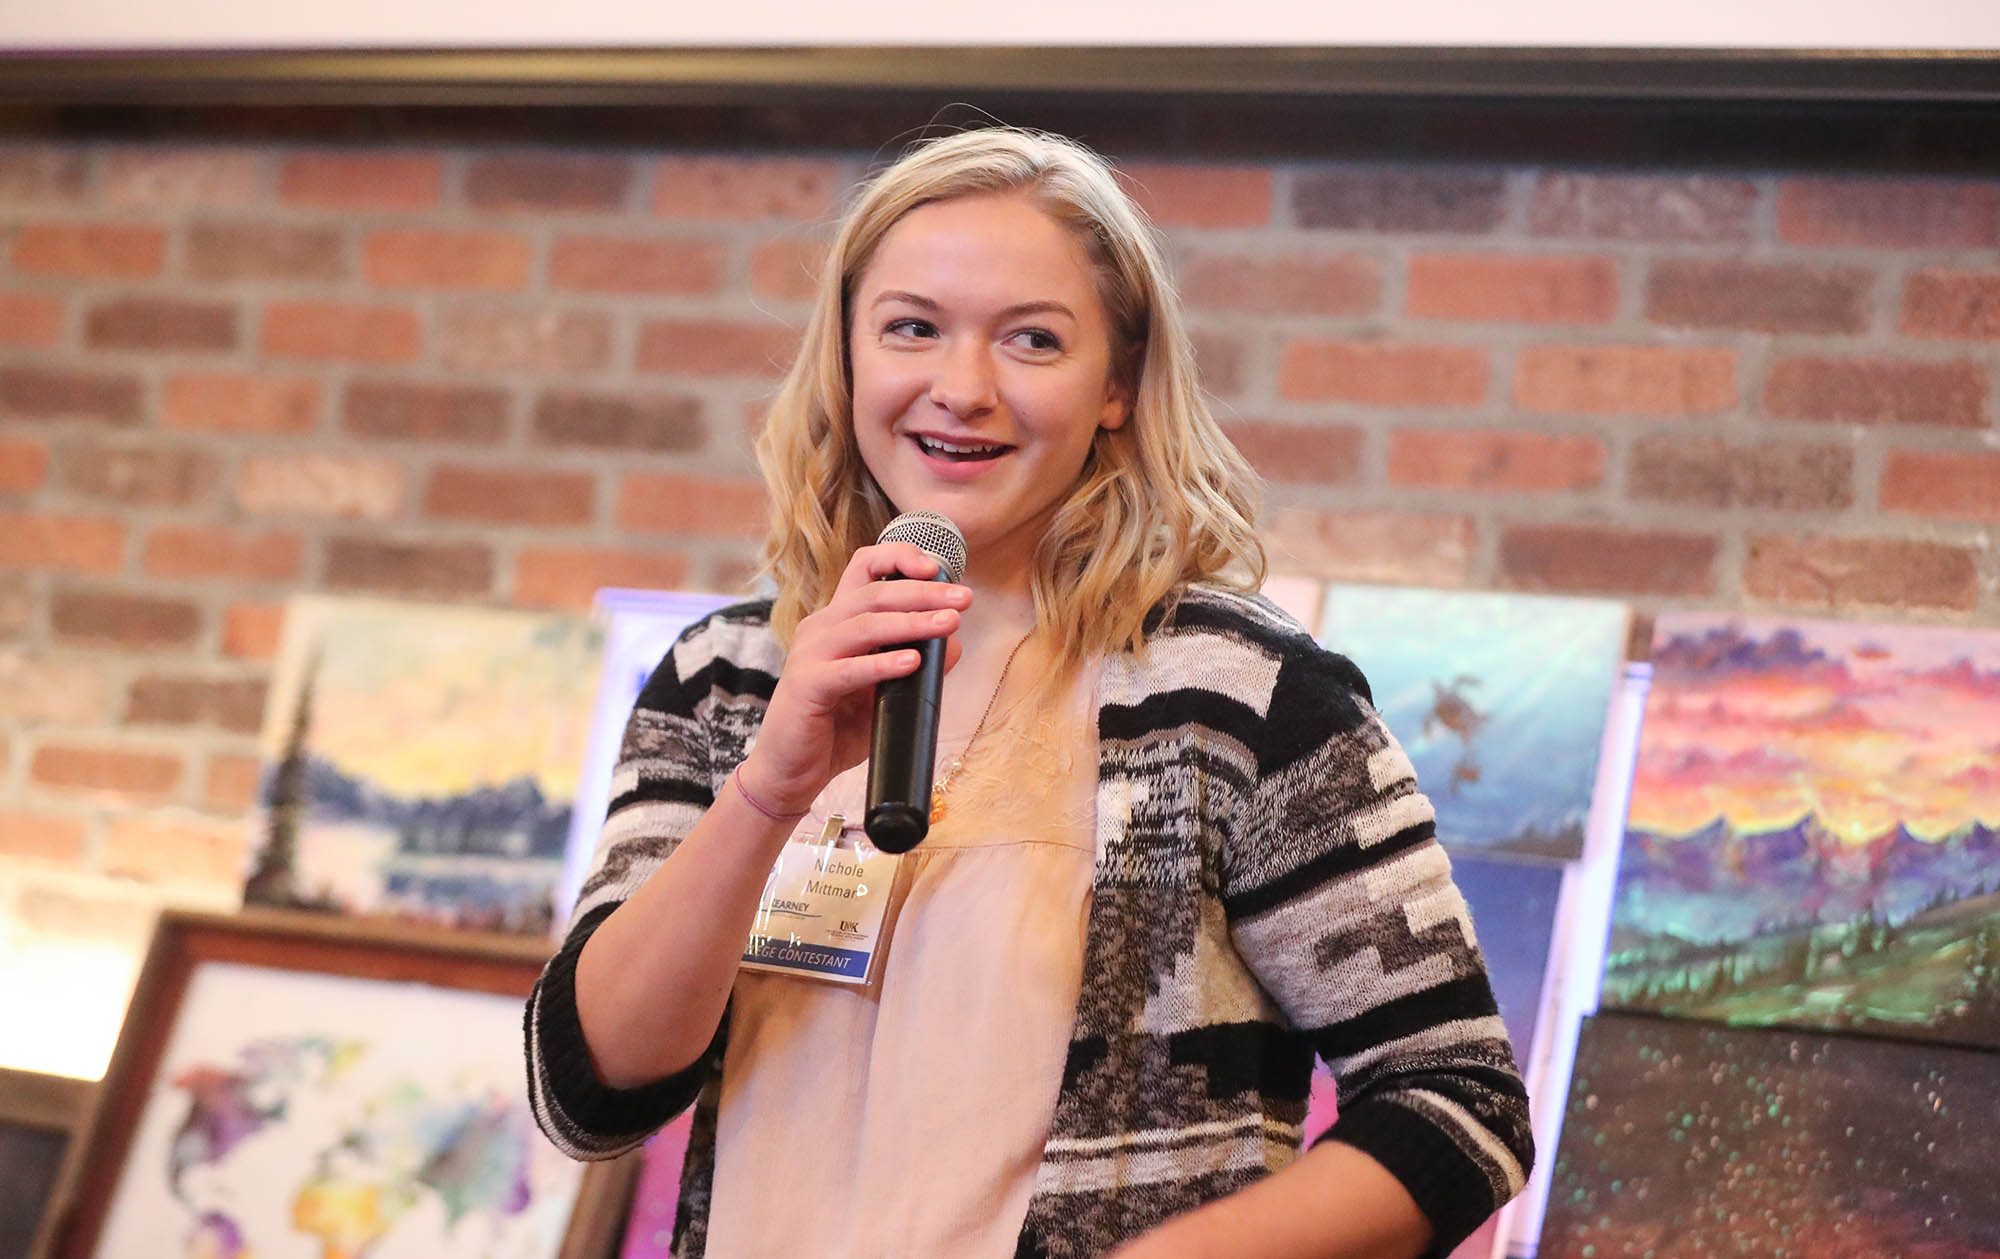 UNK sophomore Nicole Mittman talks about her glow-in-the-dark paintings during the Big Idea Kearney competition Wednesday evening at Cunningham's on the Lake. Mittman won the business contest's college division. (Photo by Corbey R. Dorsey, UNK Communications)